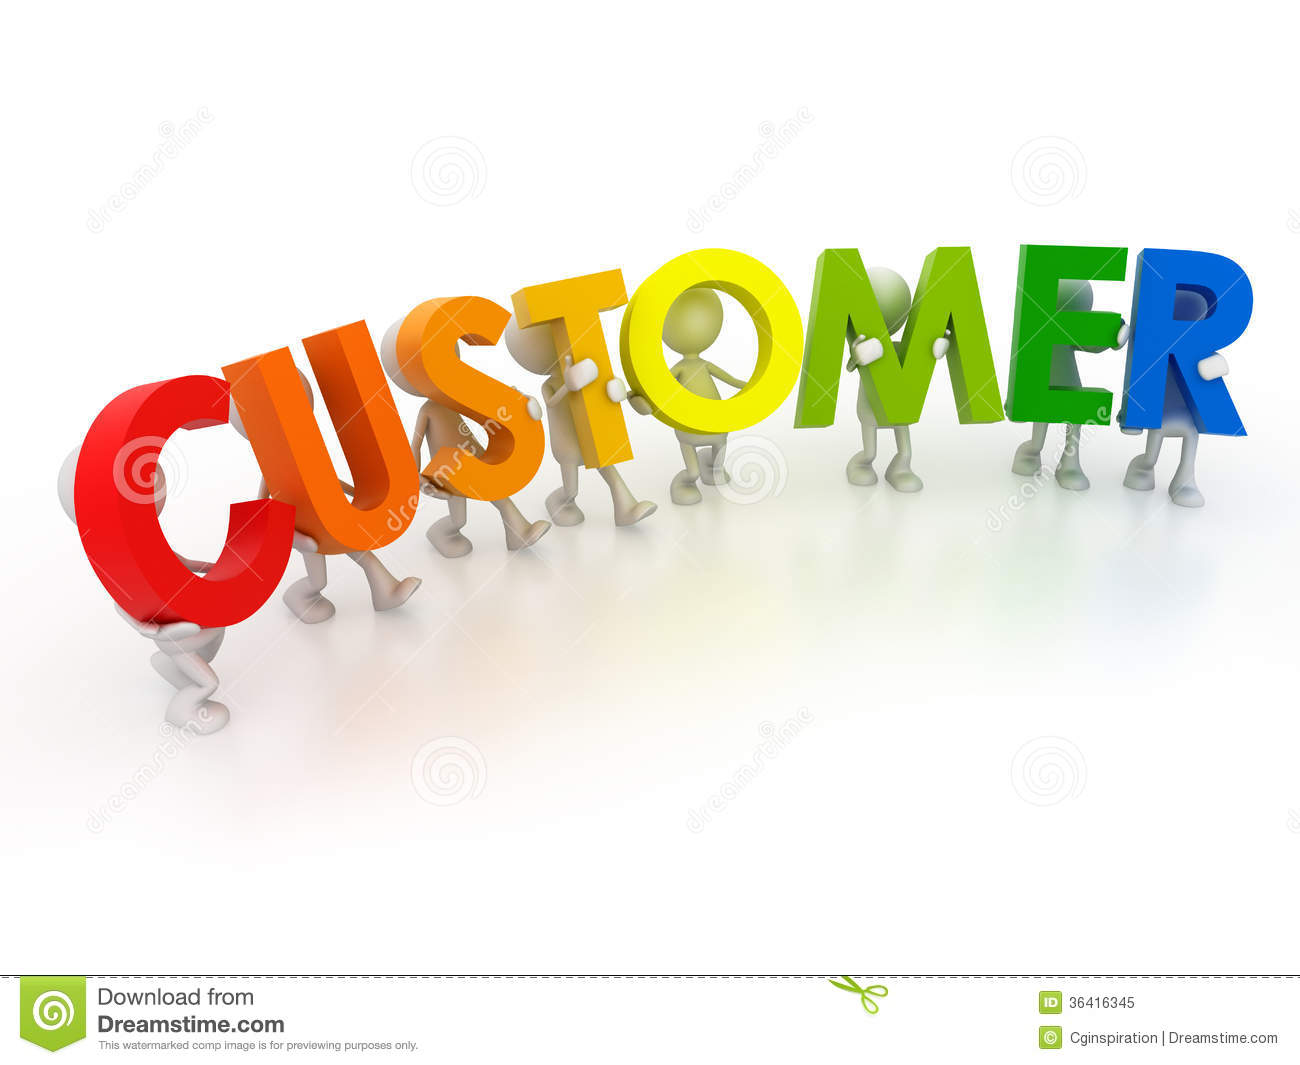 customer support team royalty clipart panda free clipart images rh clipartpanda com customer service clip art images customer service clip art free